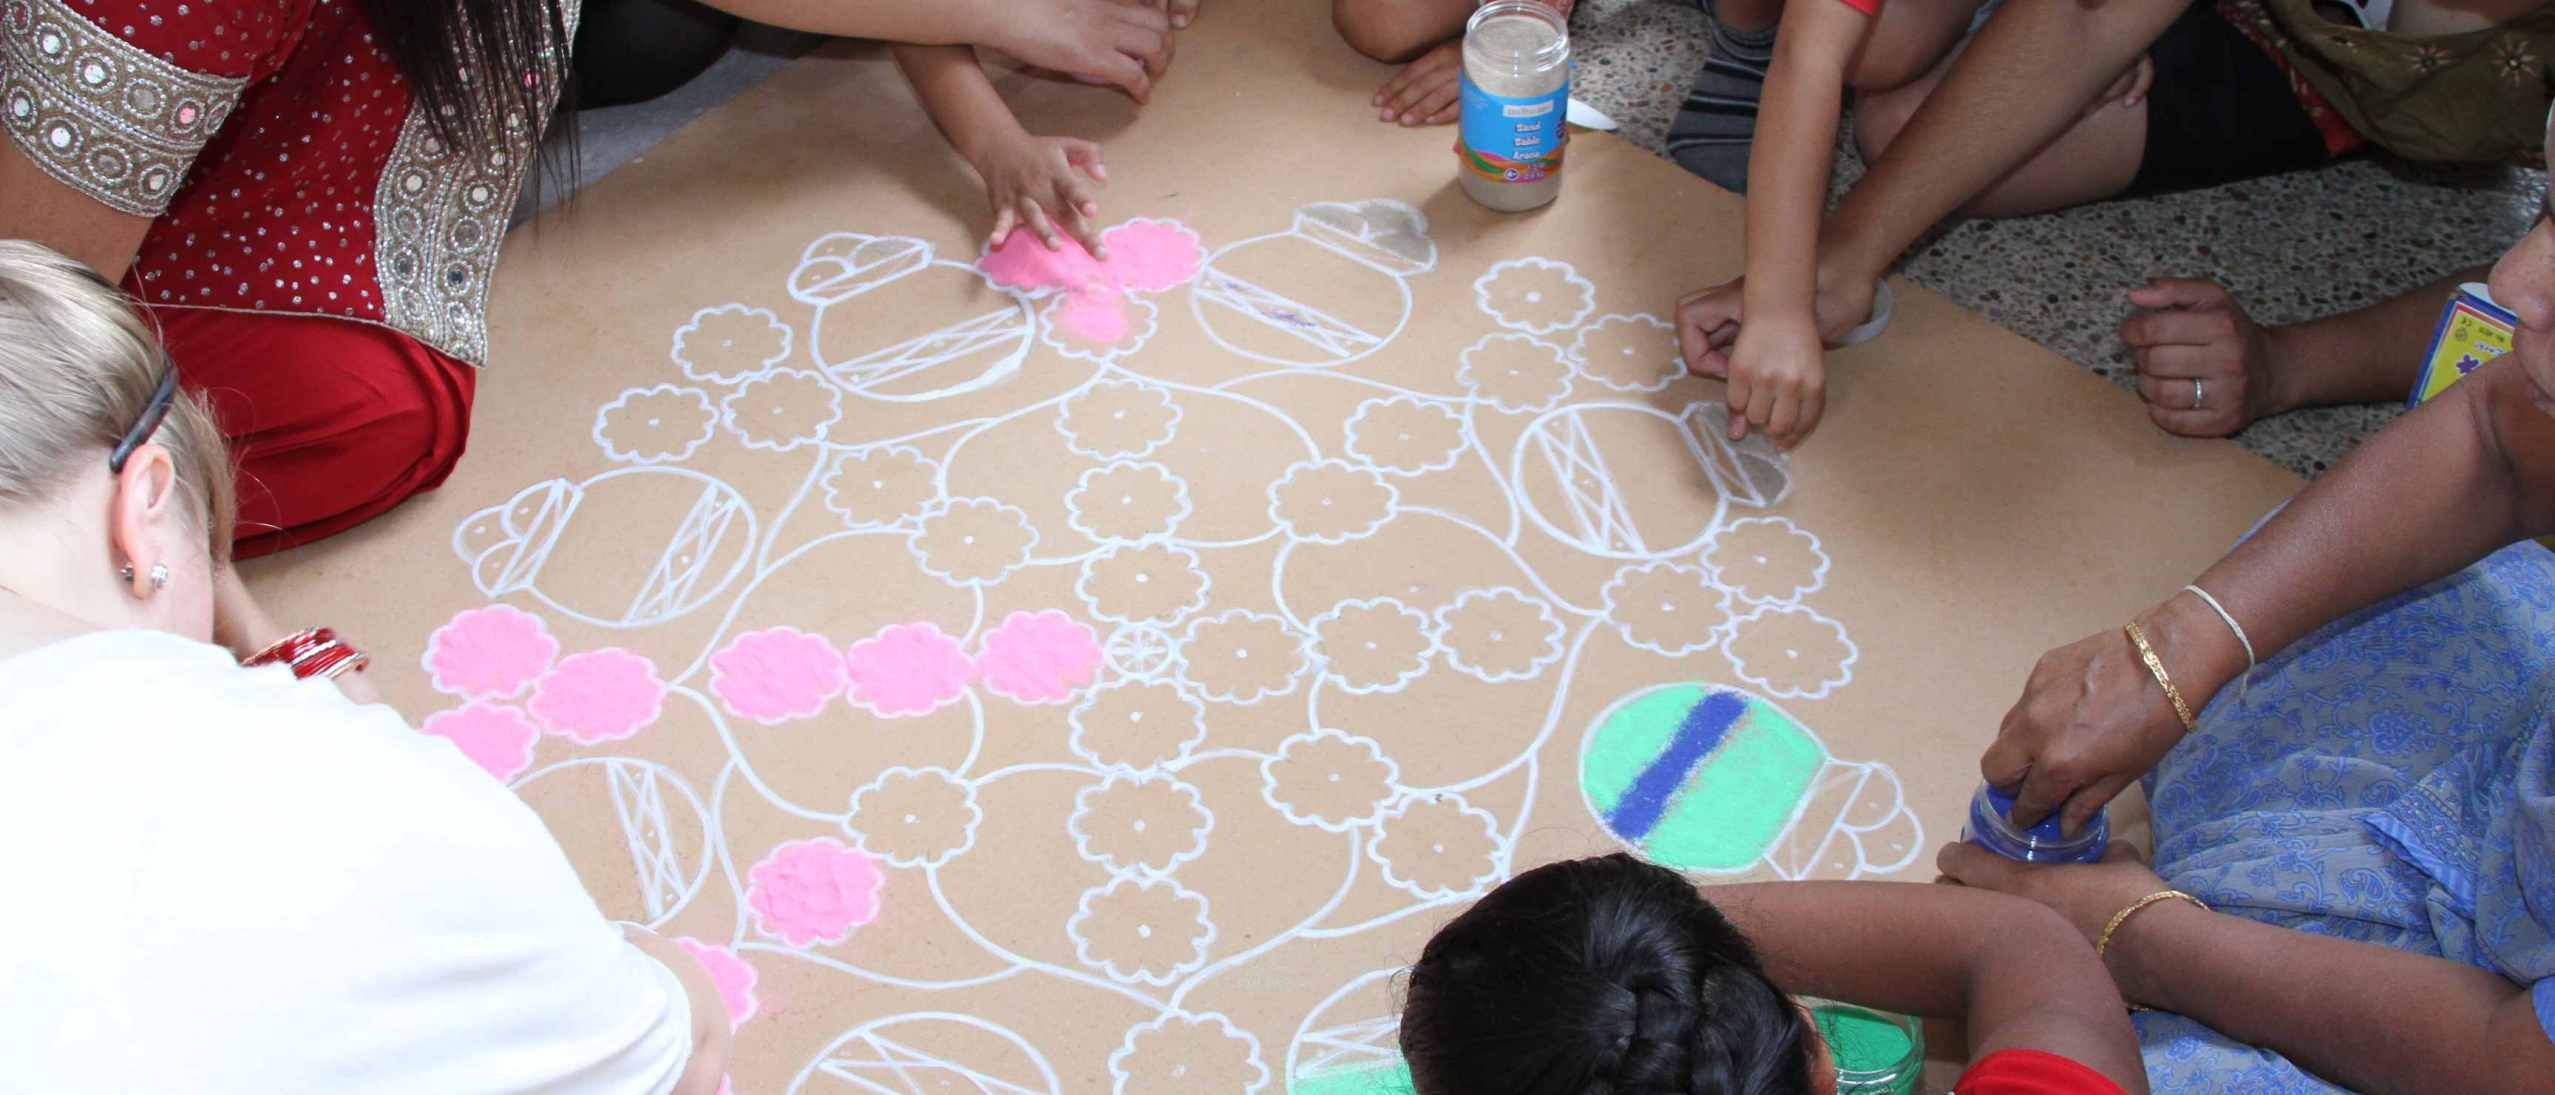 Hands drawing circles on large piece of kraft paper on the floor.